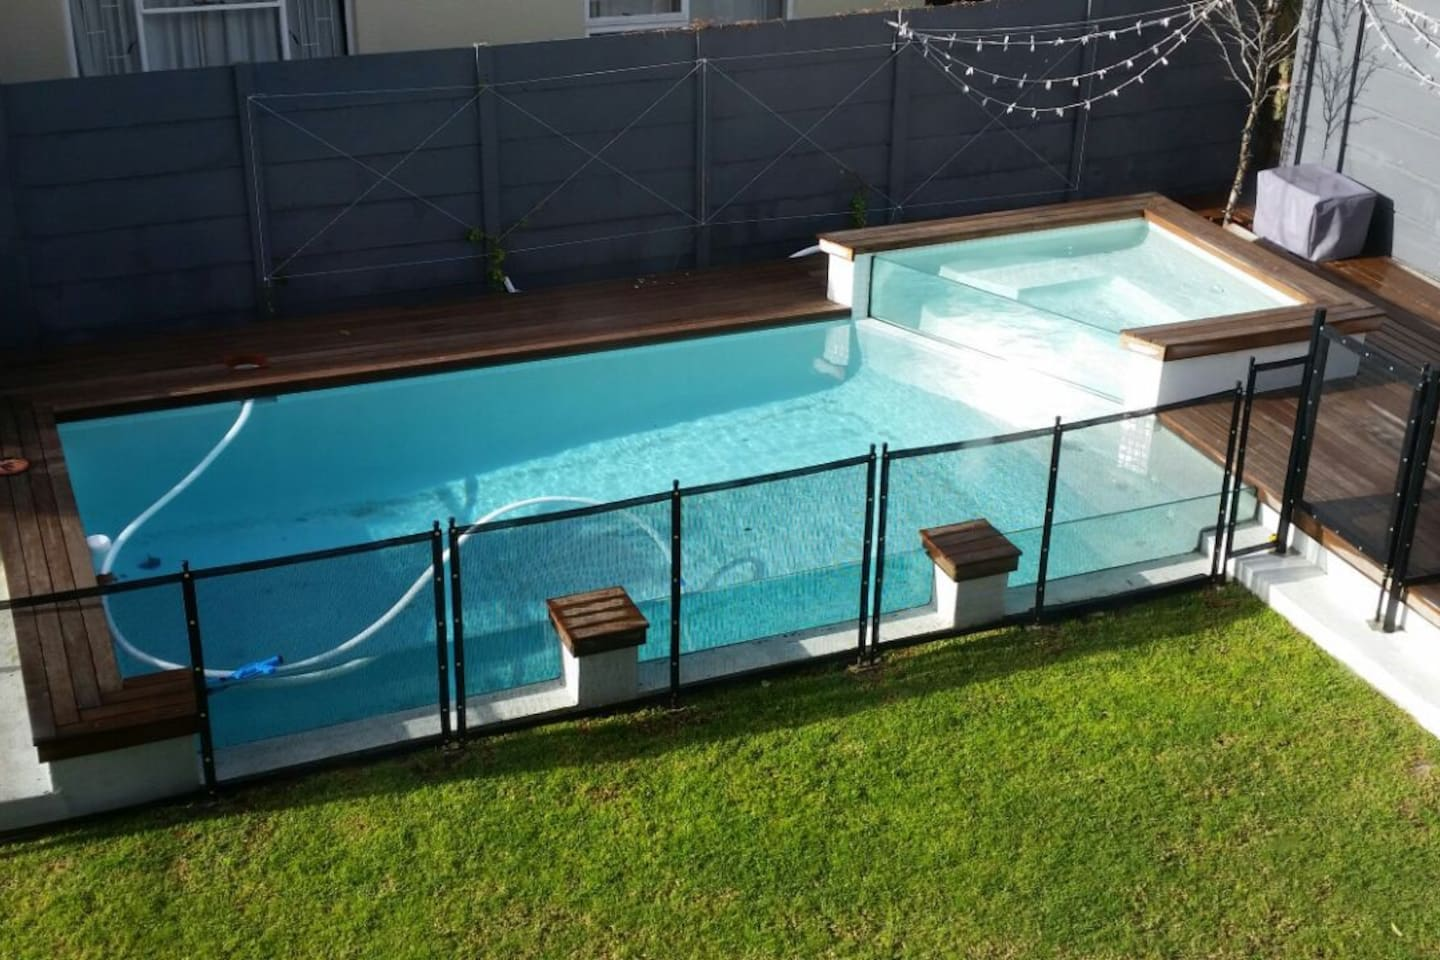 Pool with glass sides and top pool which works well to relax in or for smaller kids.